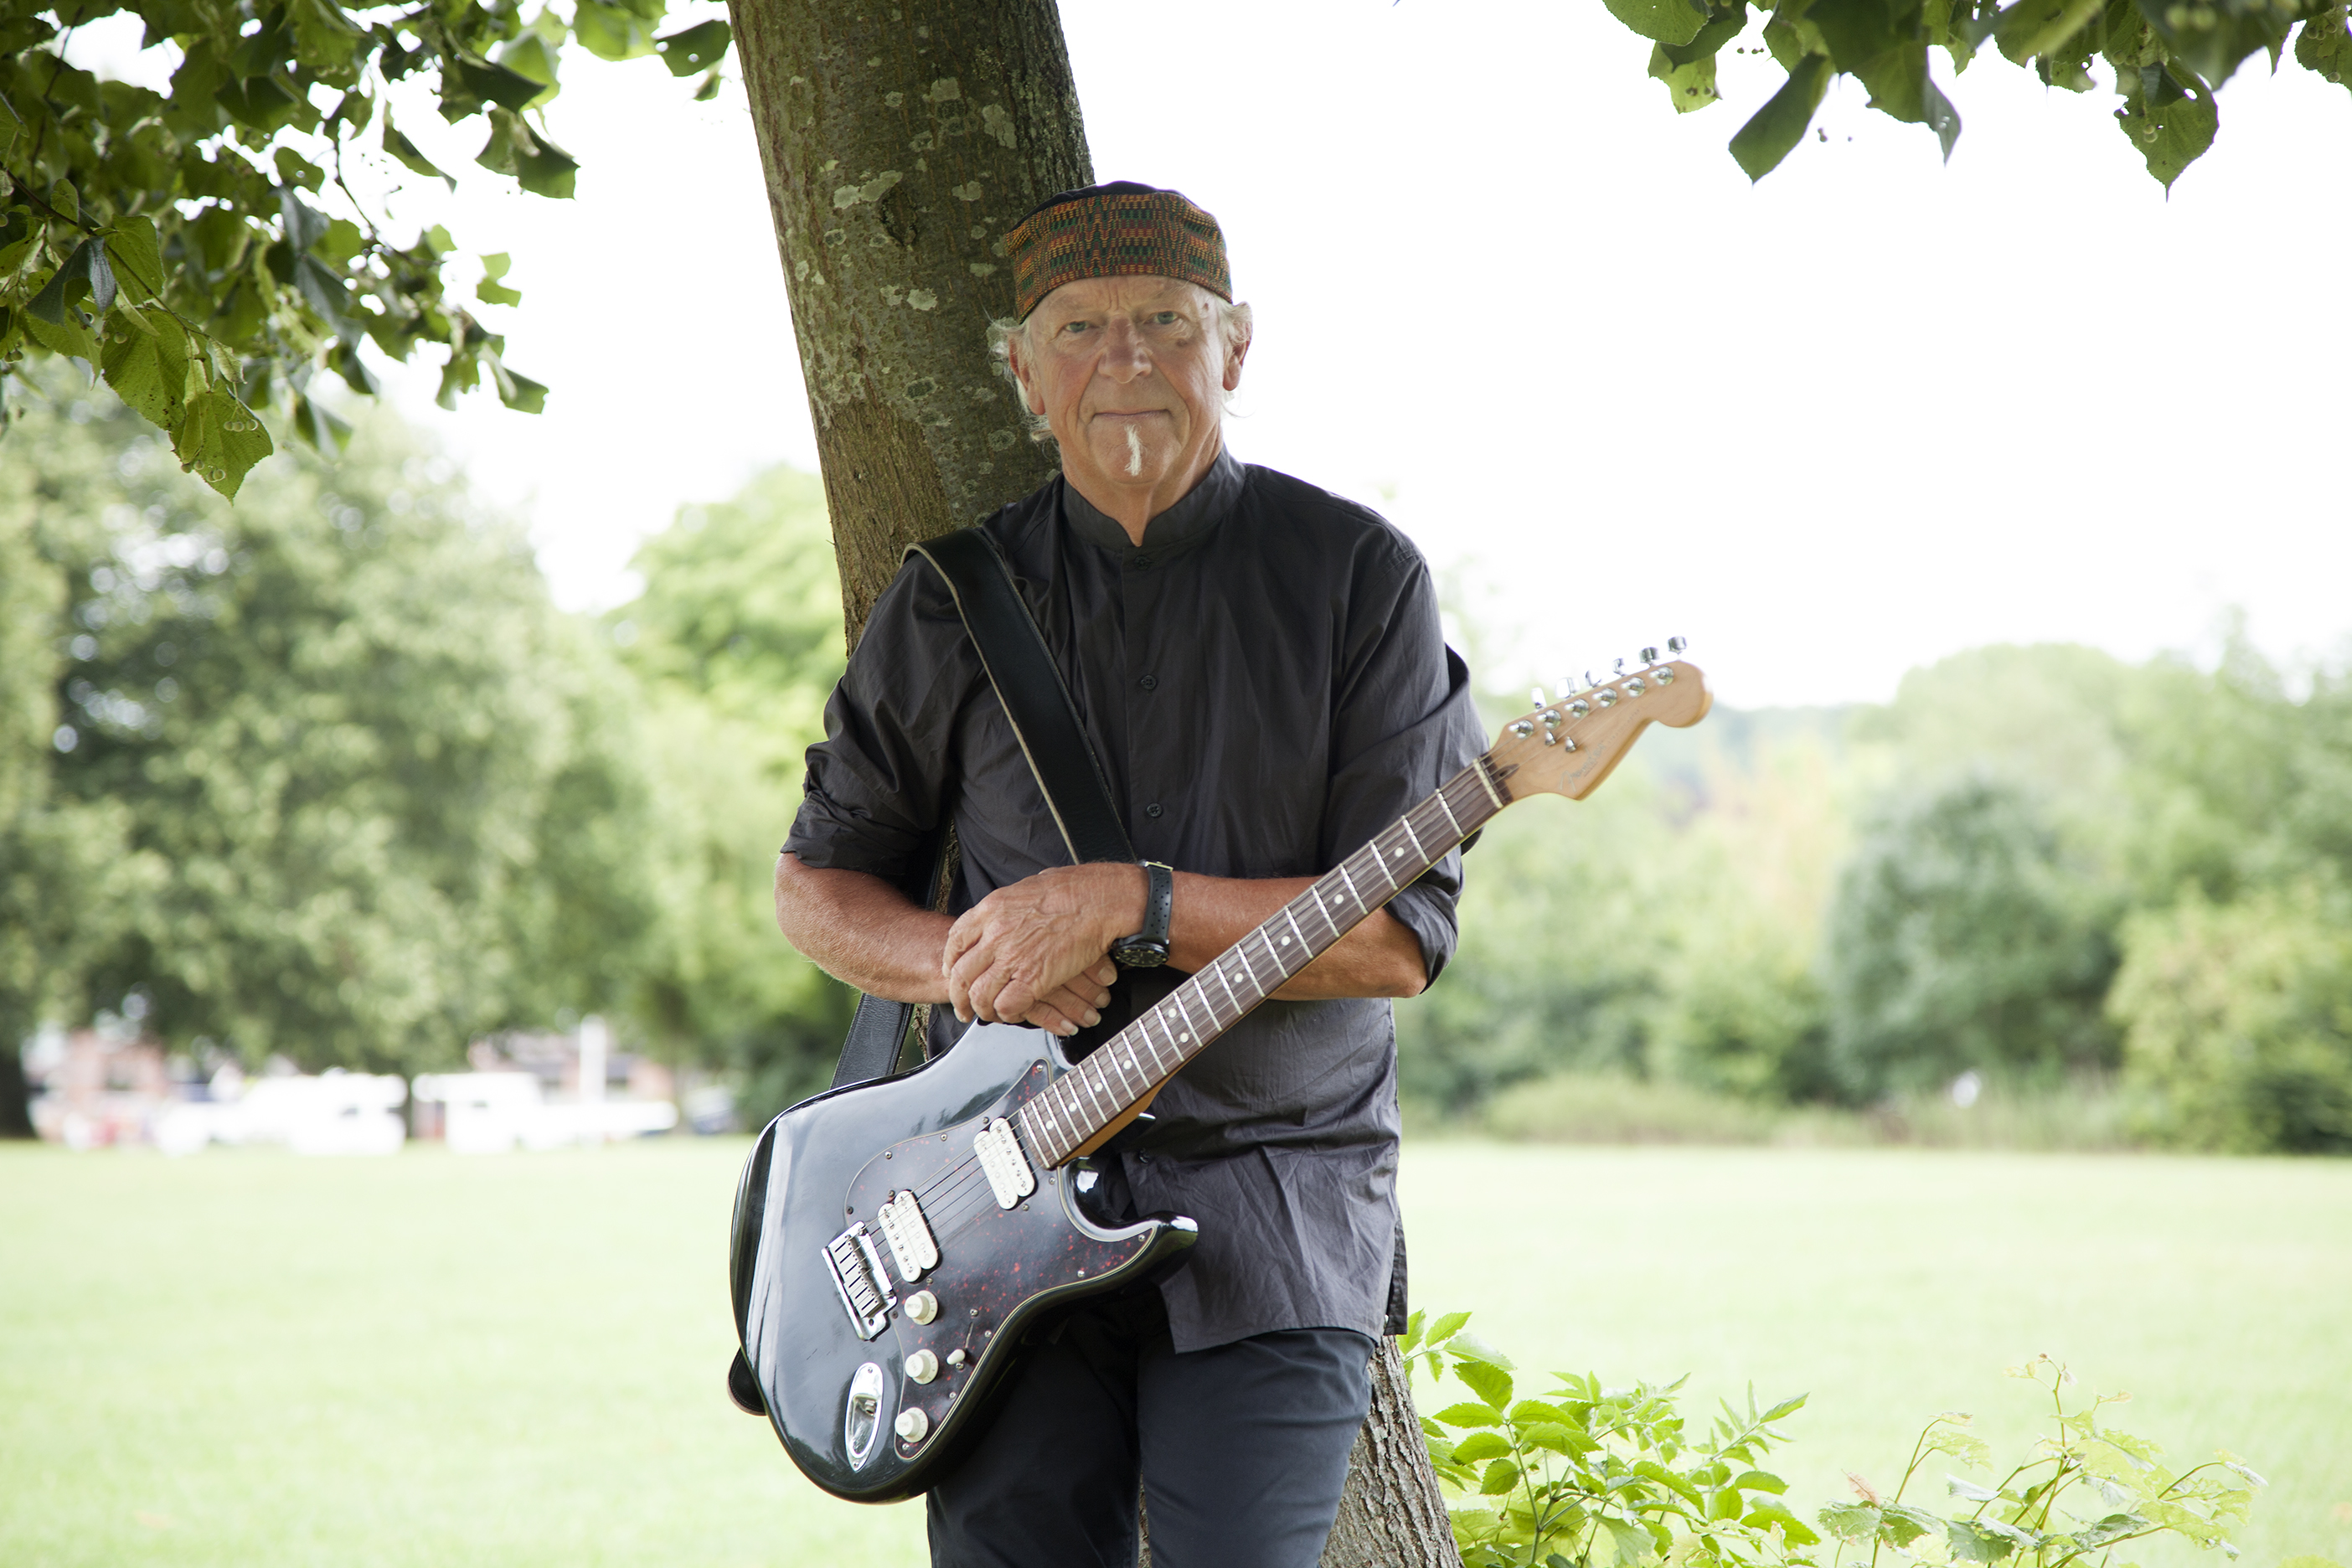 jethro tull s martin barre to celebrate 50 years of tull at narrows center limelight magazine. Black Bedroom Furniture Sets. Home Design Ideas